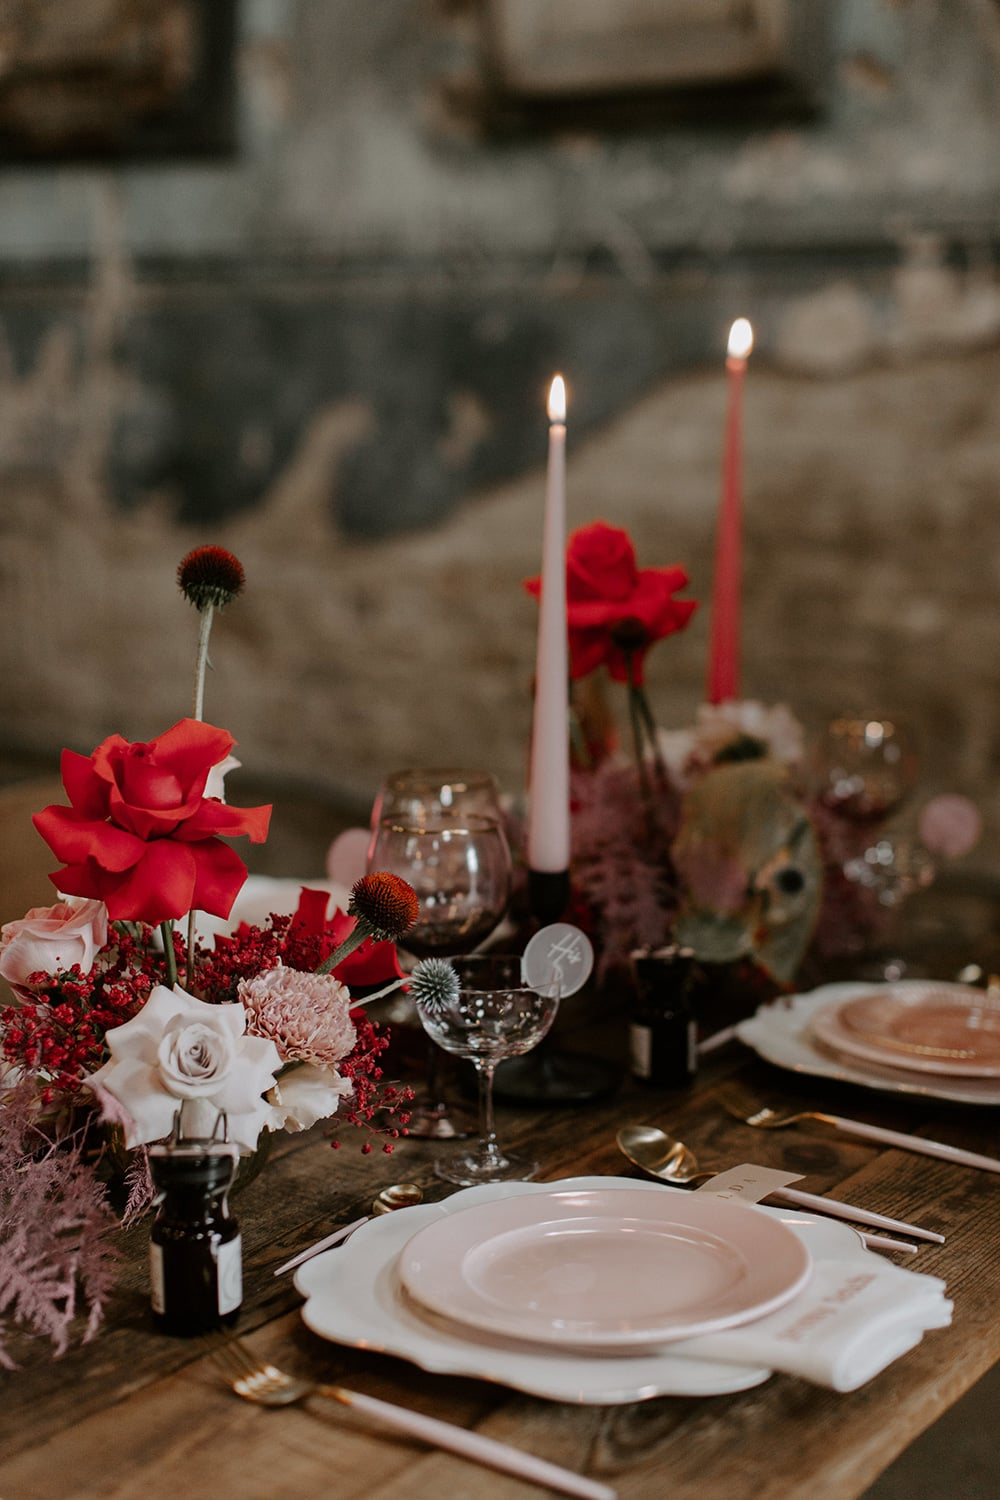 Modern Red & Pink Wedding Ideas | A modern industrial wedding reception table setting on a bare wood table features layered blush and white tableware, artful red and pink flower arrangements and tonal taper candles to match. | Photography: Emily Rose Photography via The Stars Inside